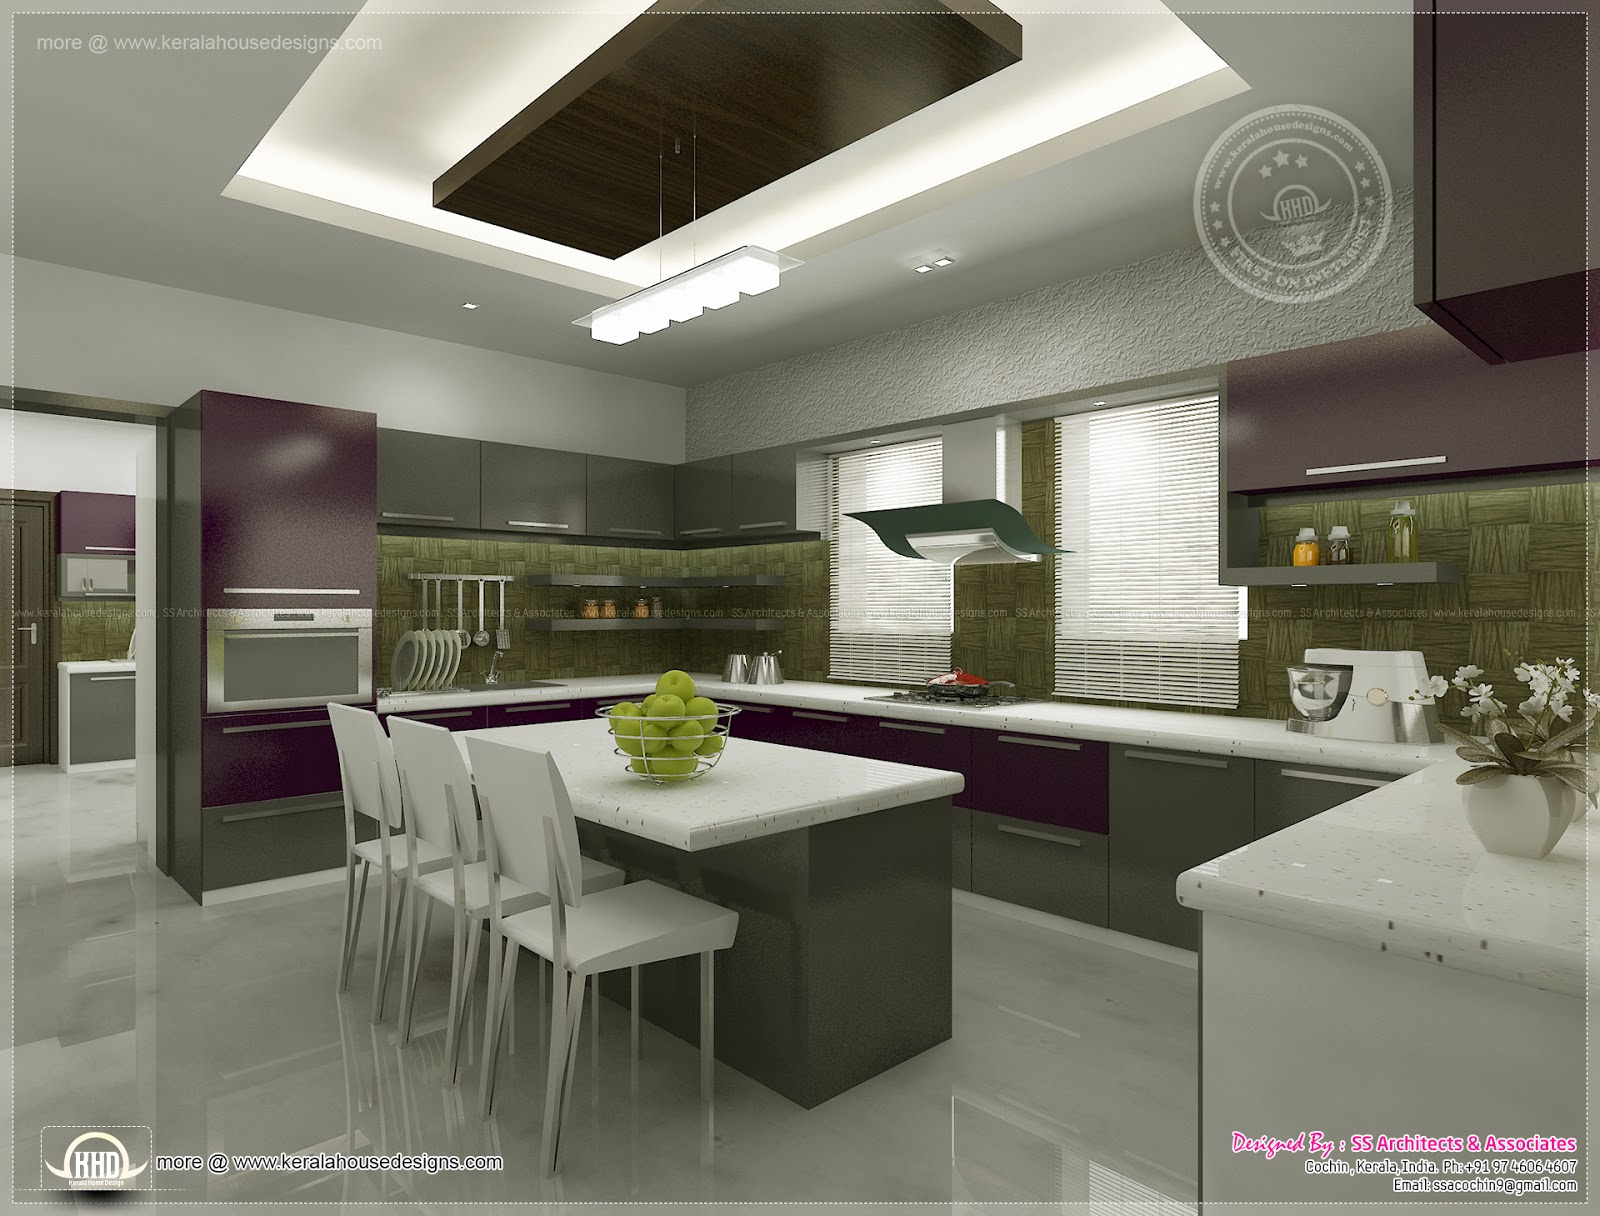 kitchen interior design ideas photos kitchen interior views by ss architects cochin kerala 24735